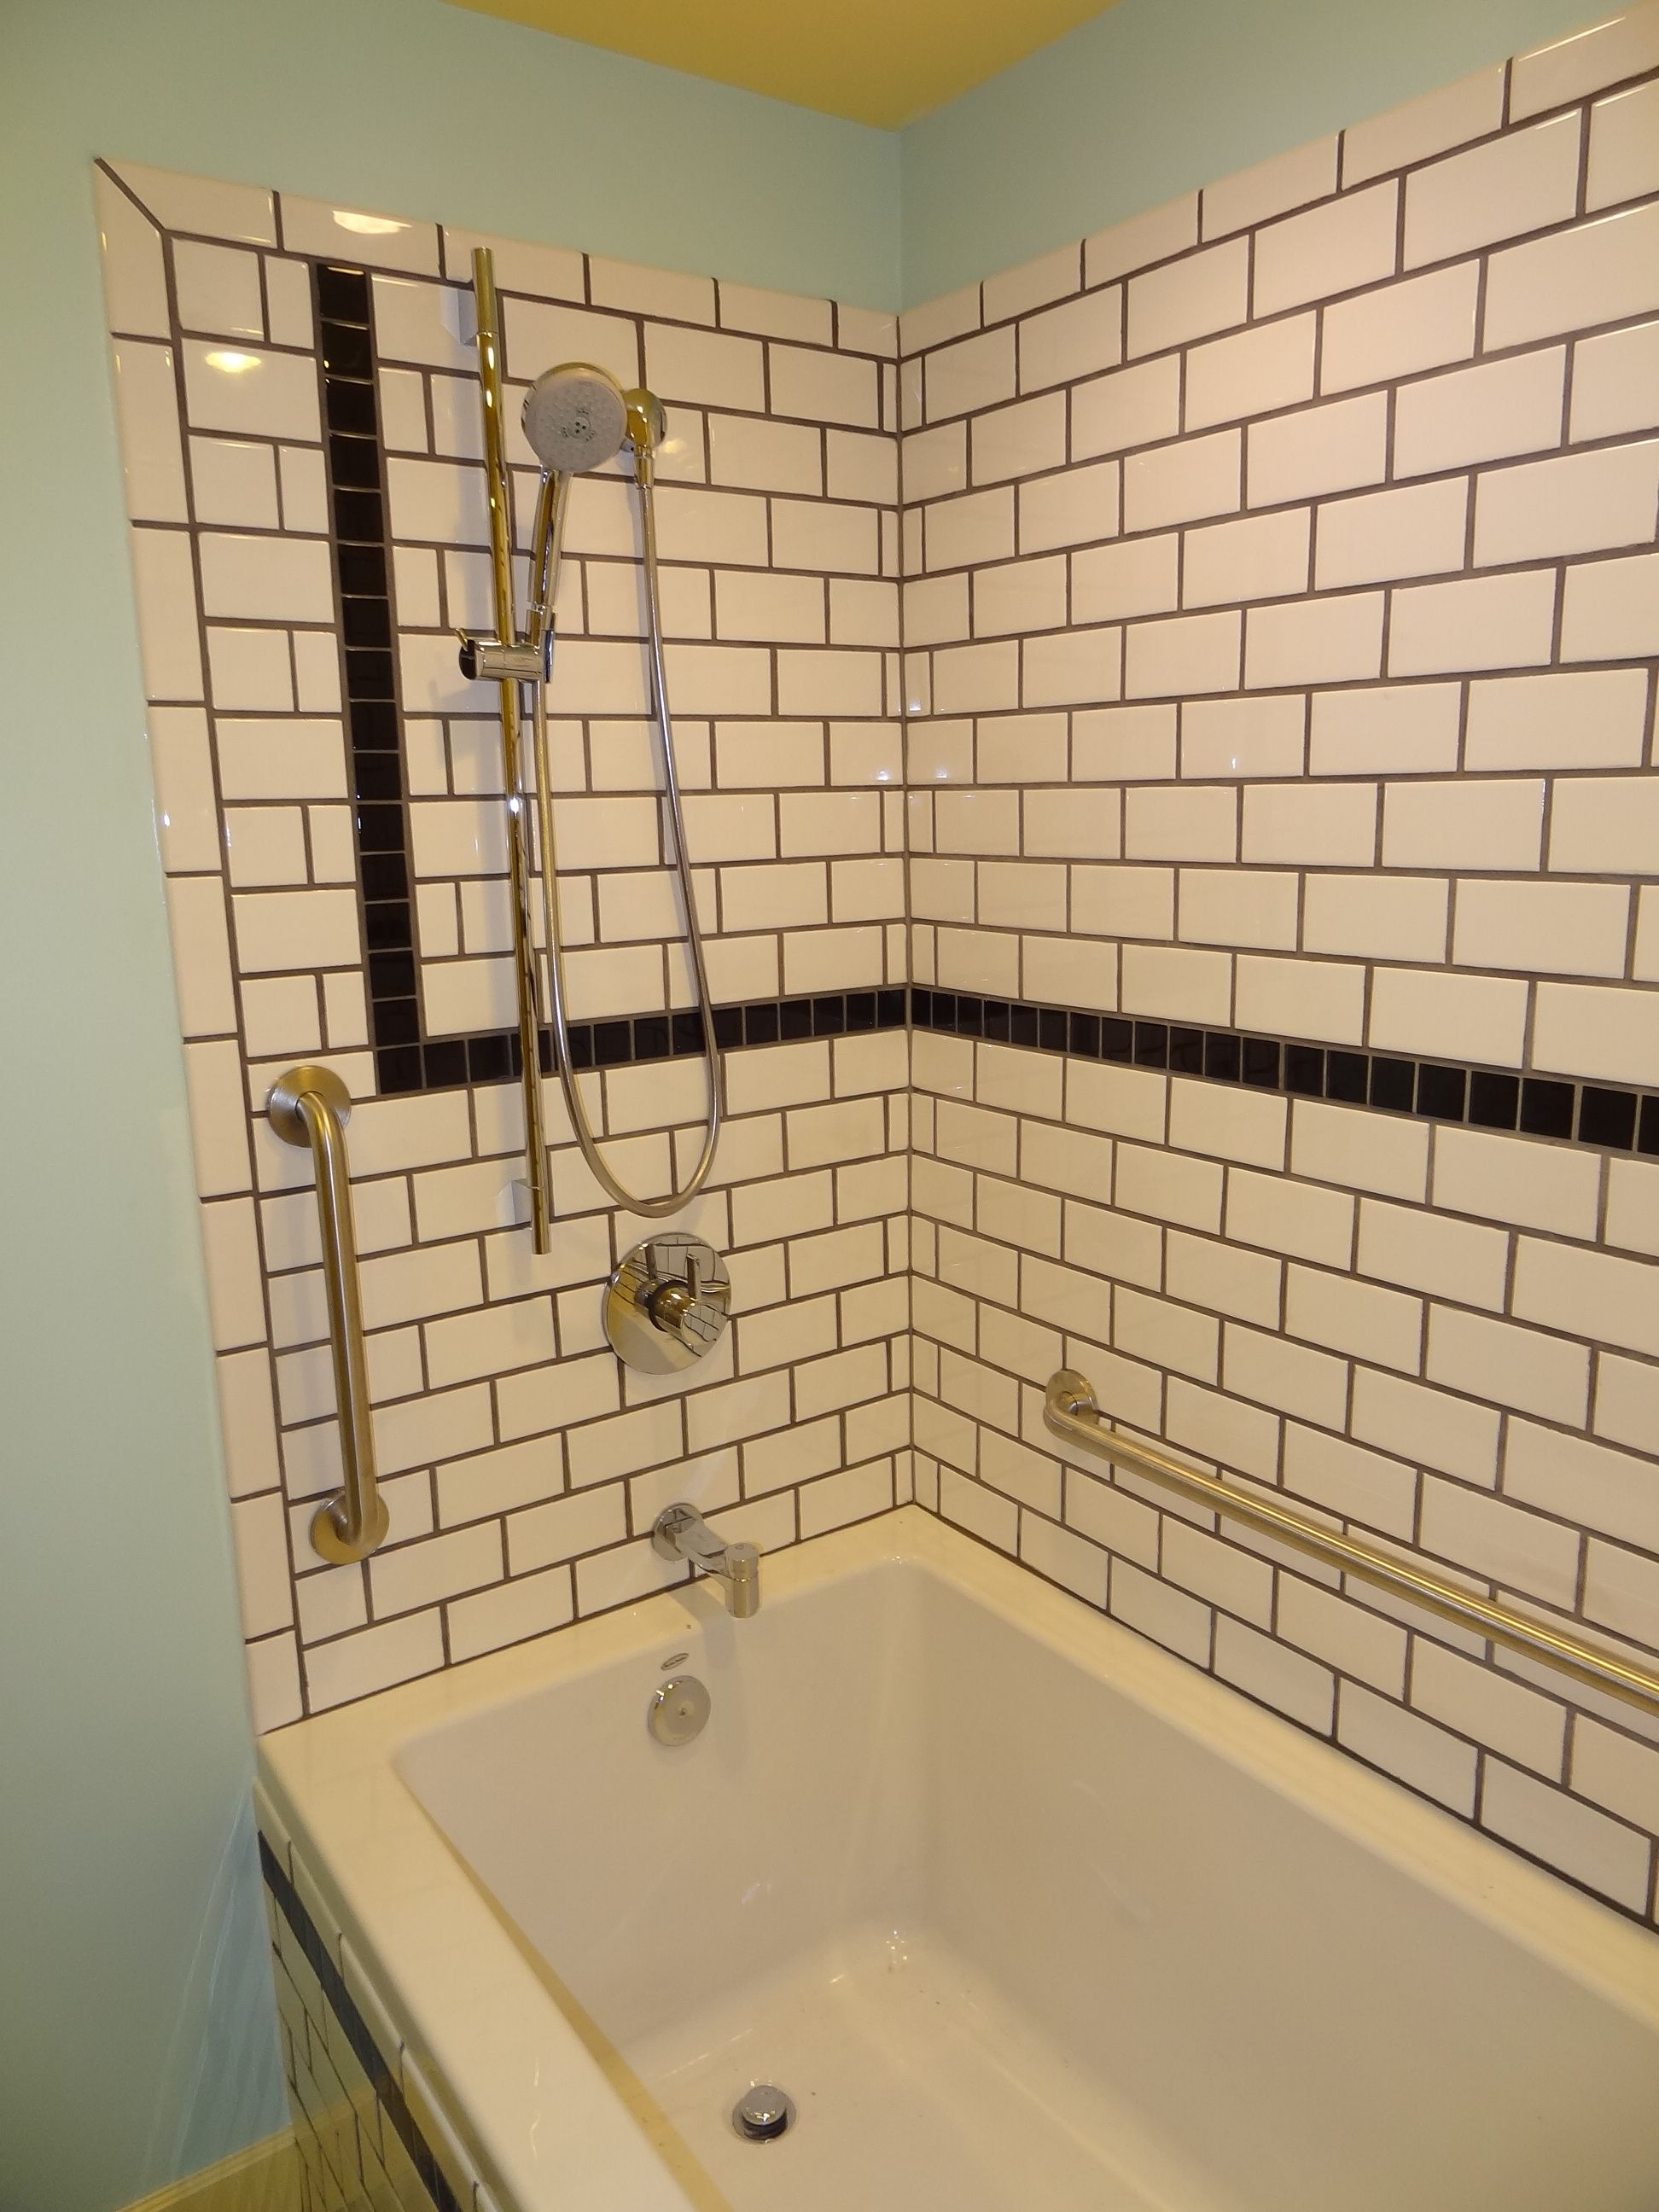 Bullnose Tile Meets Tub Instead Of Bordering It Hm May